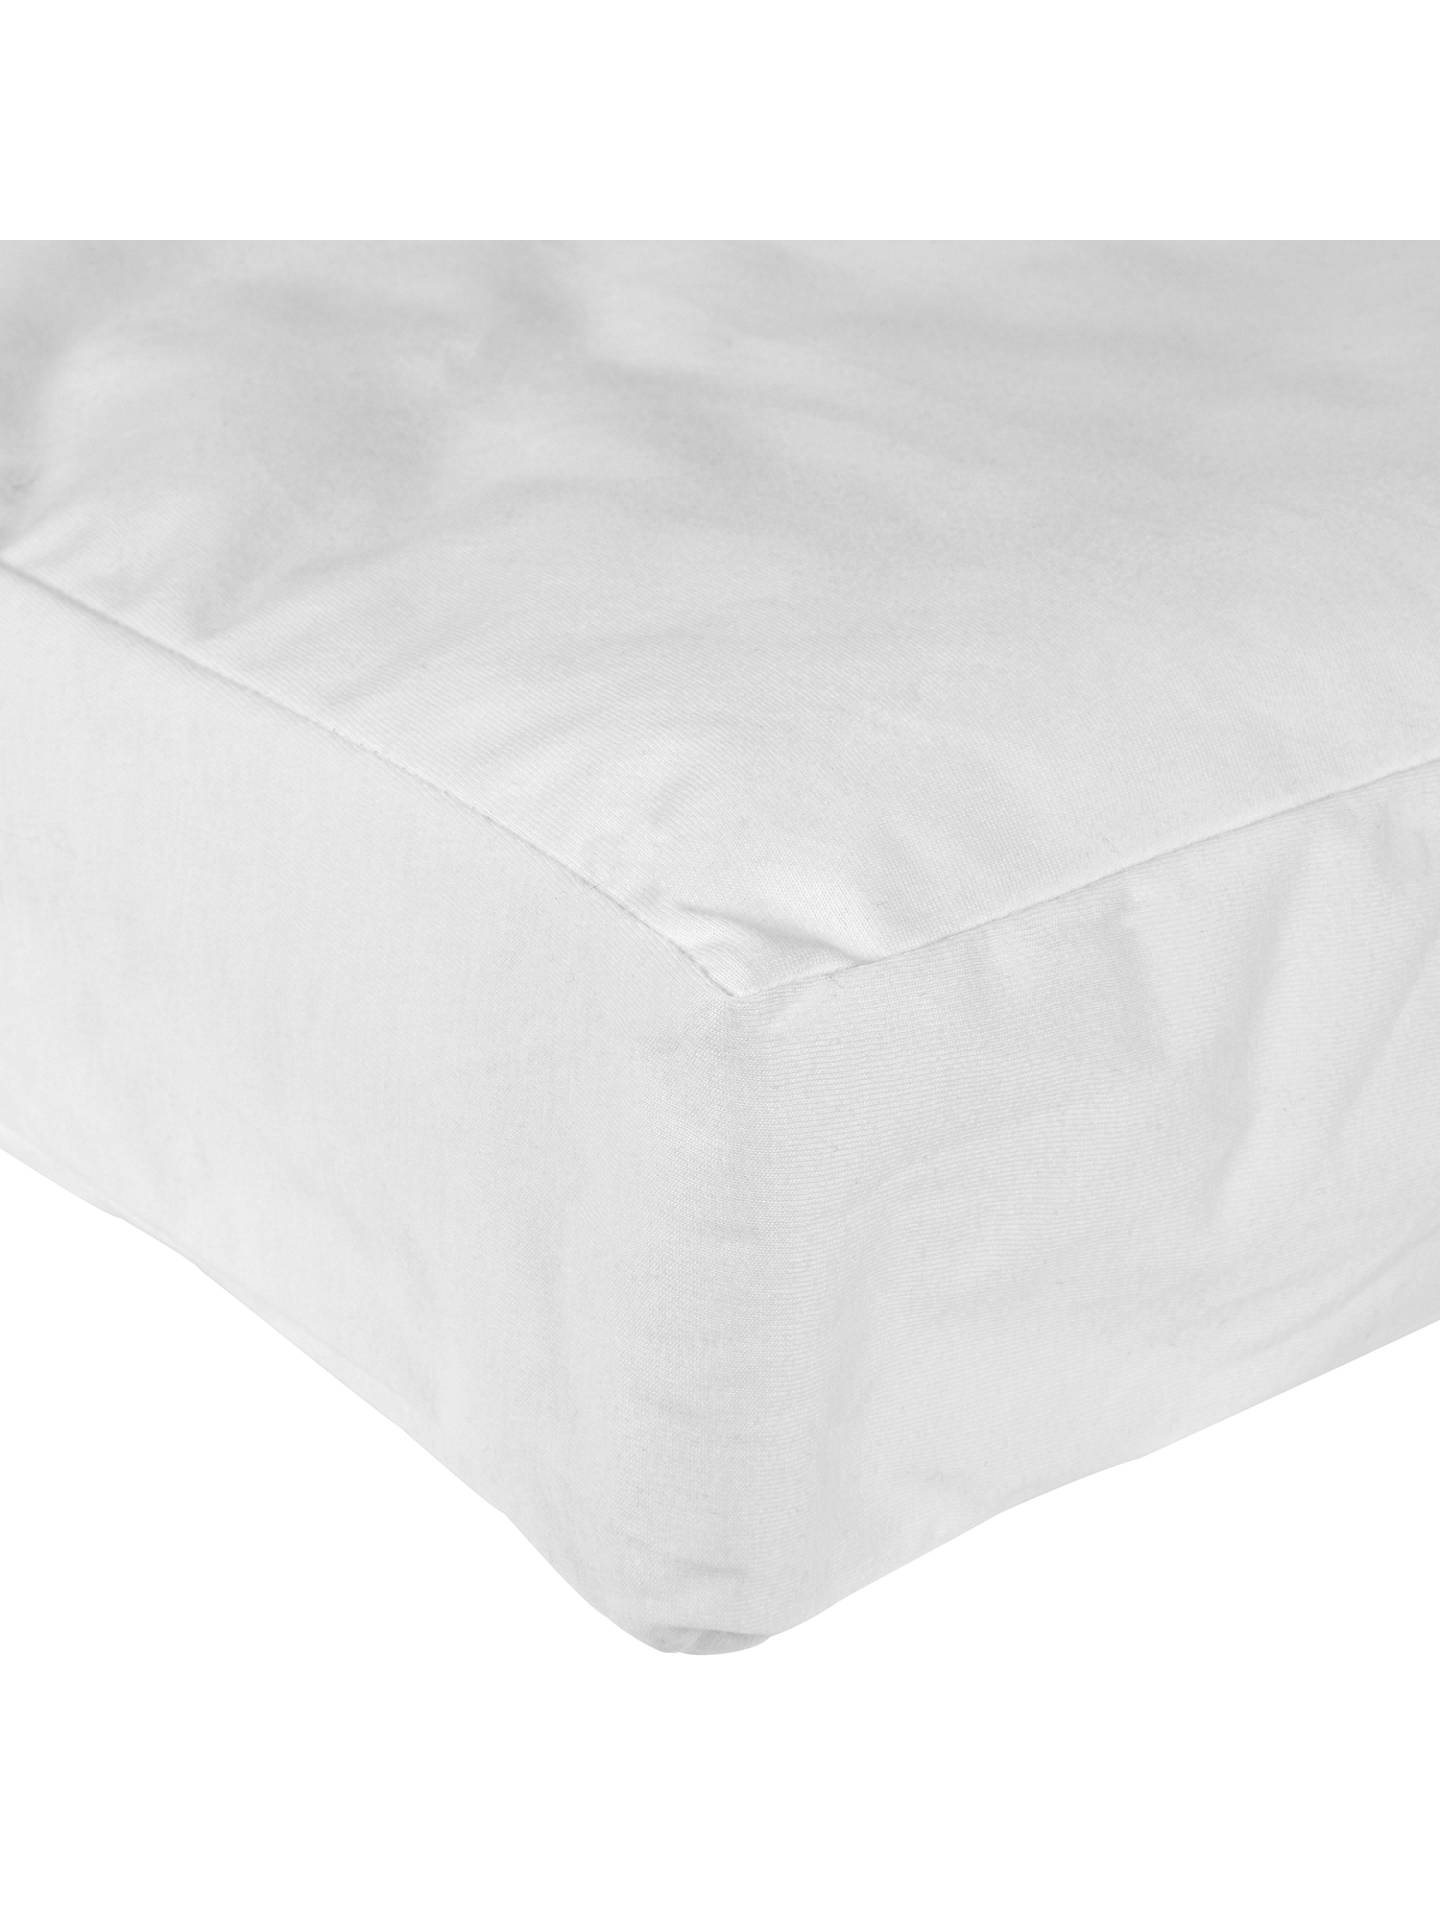 BuyJohn Lewis & Partners Micro-Fresh Anti Allergy Cot Mattress Protector Online at johnlewis.com